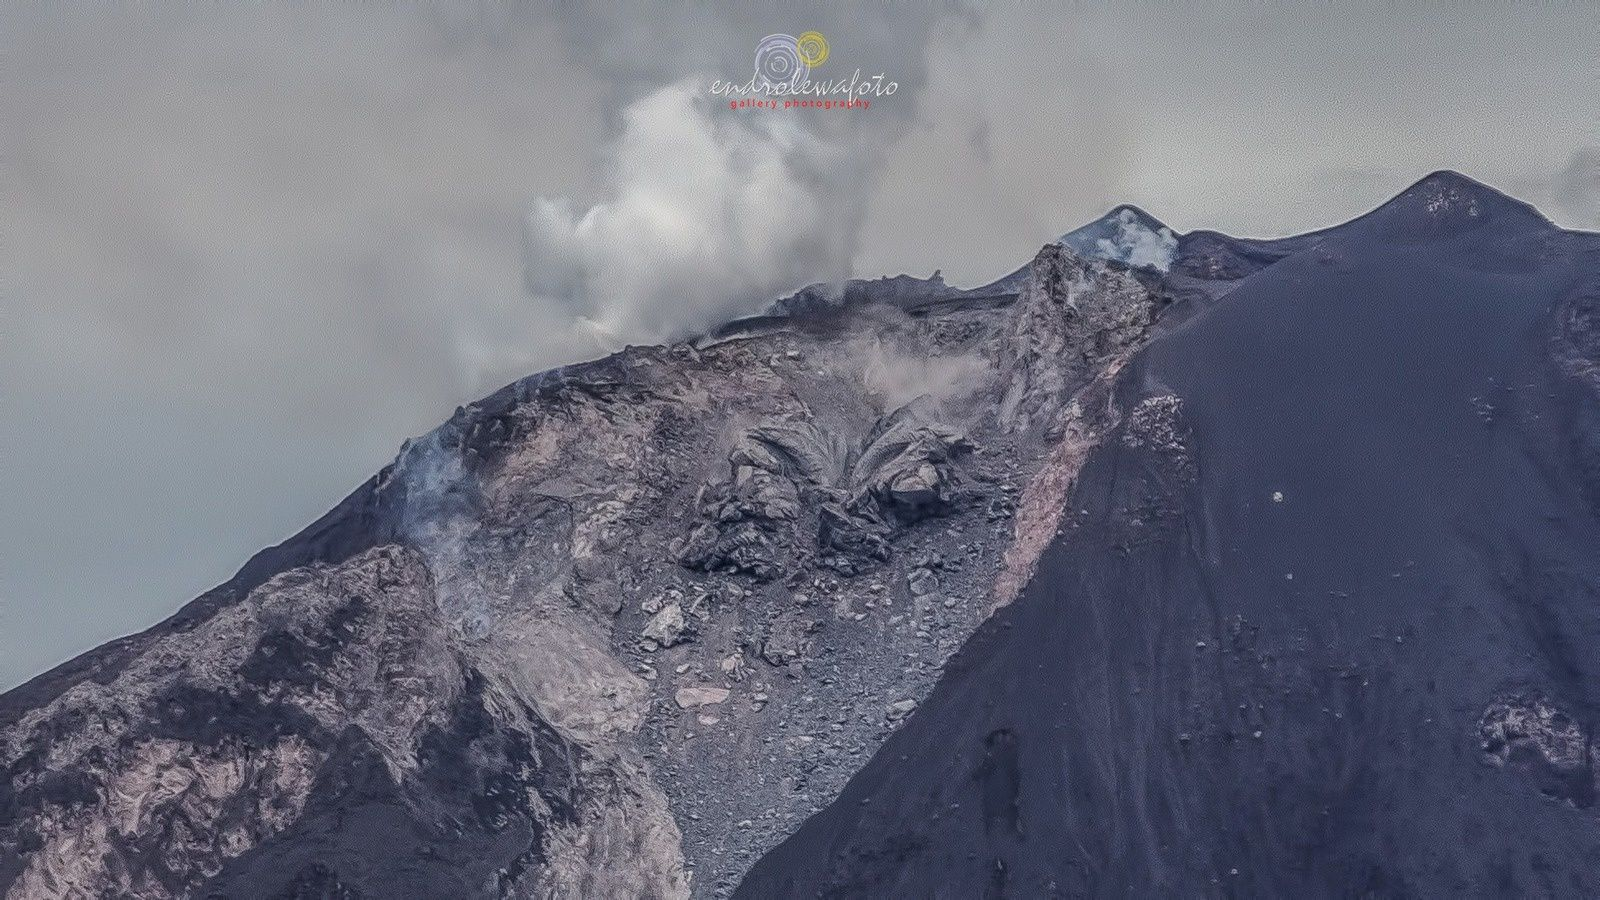 Sinabung - 07.09.2016 / 9:18 loc the lava washed out symmetrically - photo EndroLewa